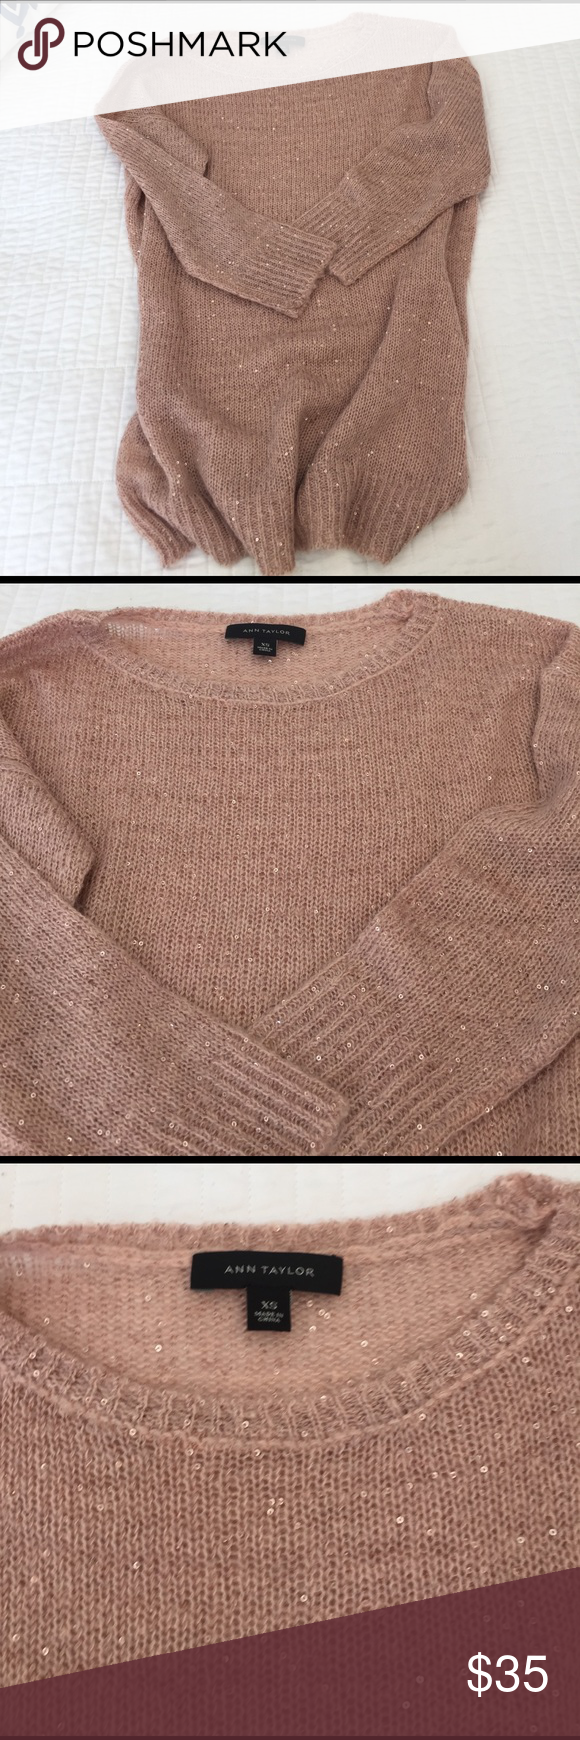 Blush sequined 3/4 sleeve sweater You will love this feminine blush sequined sweater. It has 3/4 length sleeves and is slightly sheer. Pair with white jeans for spring!! Ann Taylor Sweaters Crew & Scoop Necks